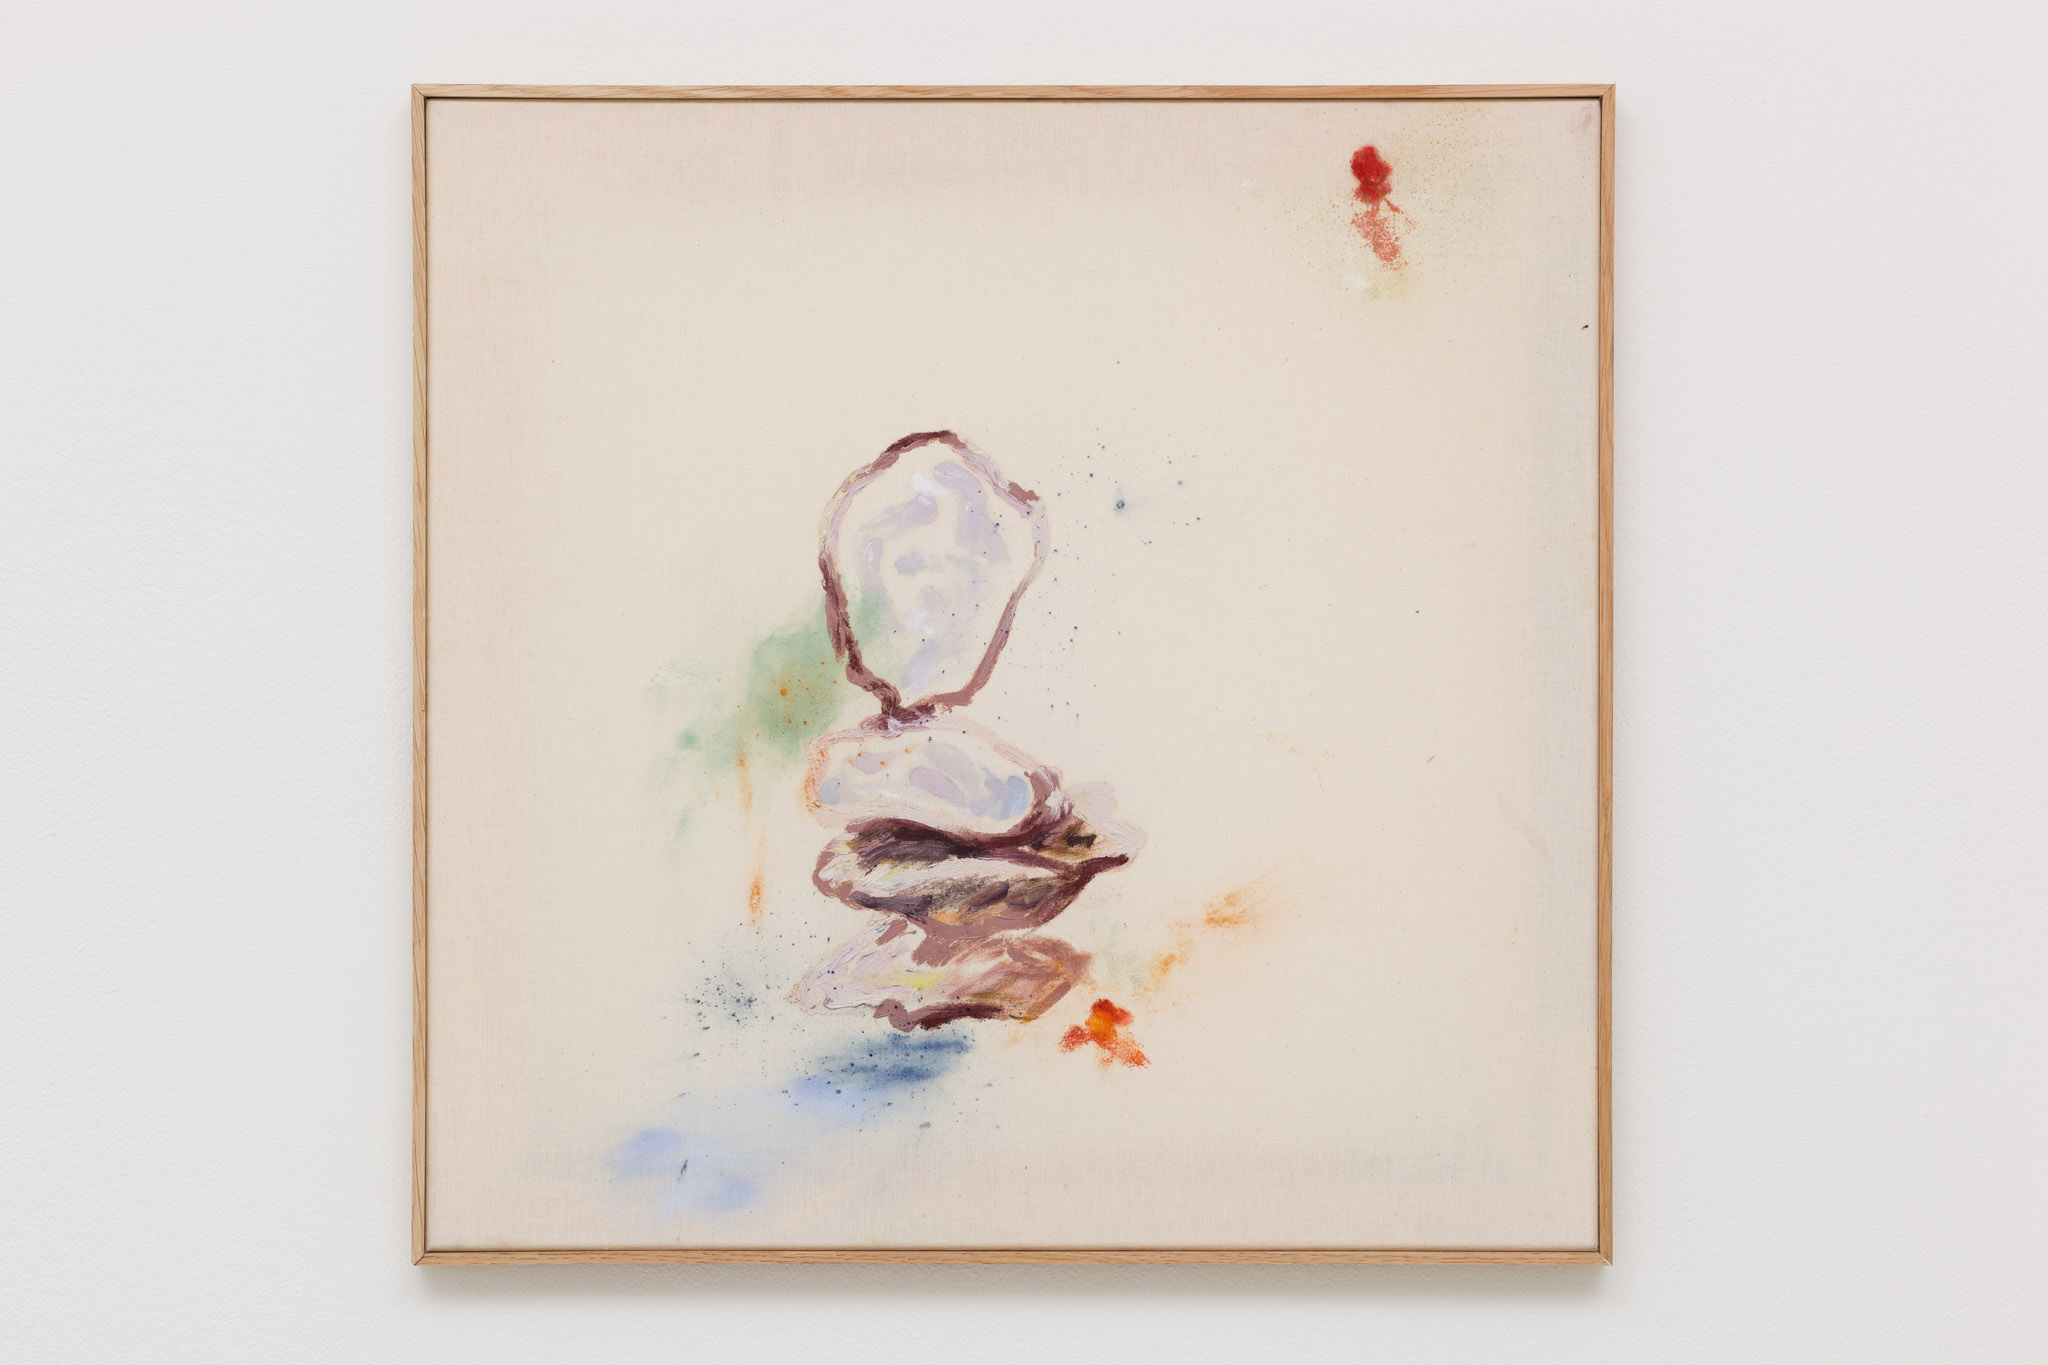 Anna Zacharoff, Oyster 2/7, 2014, oil and pigment on canvas, 51 x 50 cm, 20 1/8 x 19 3/4 ins. Thumb of the Diver , Anna Zacharoff presented by Neue Alte Brücke